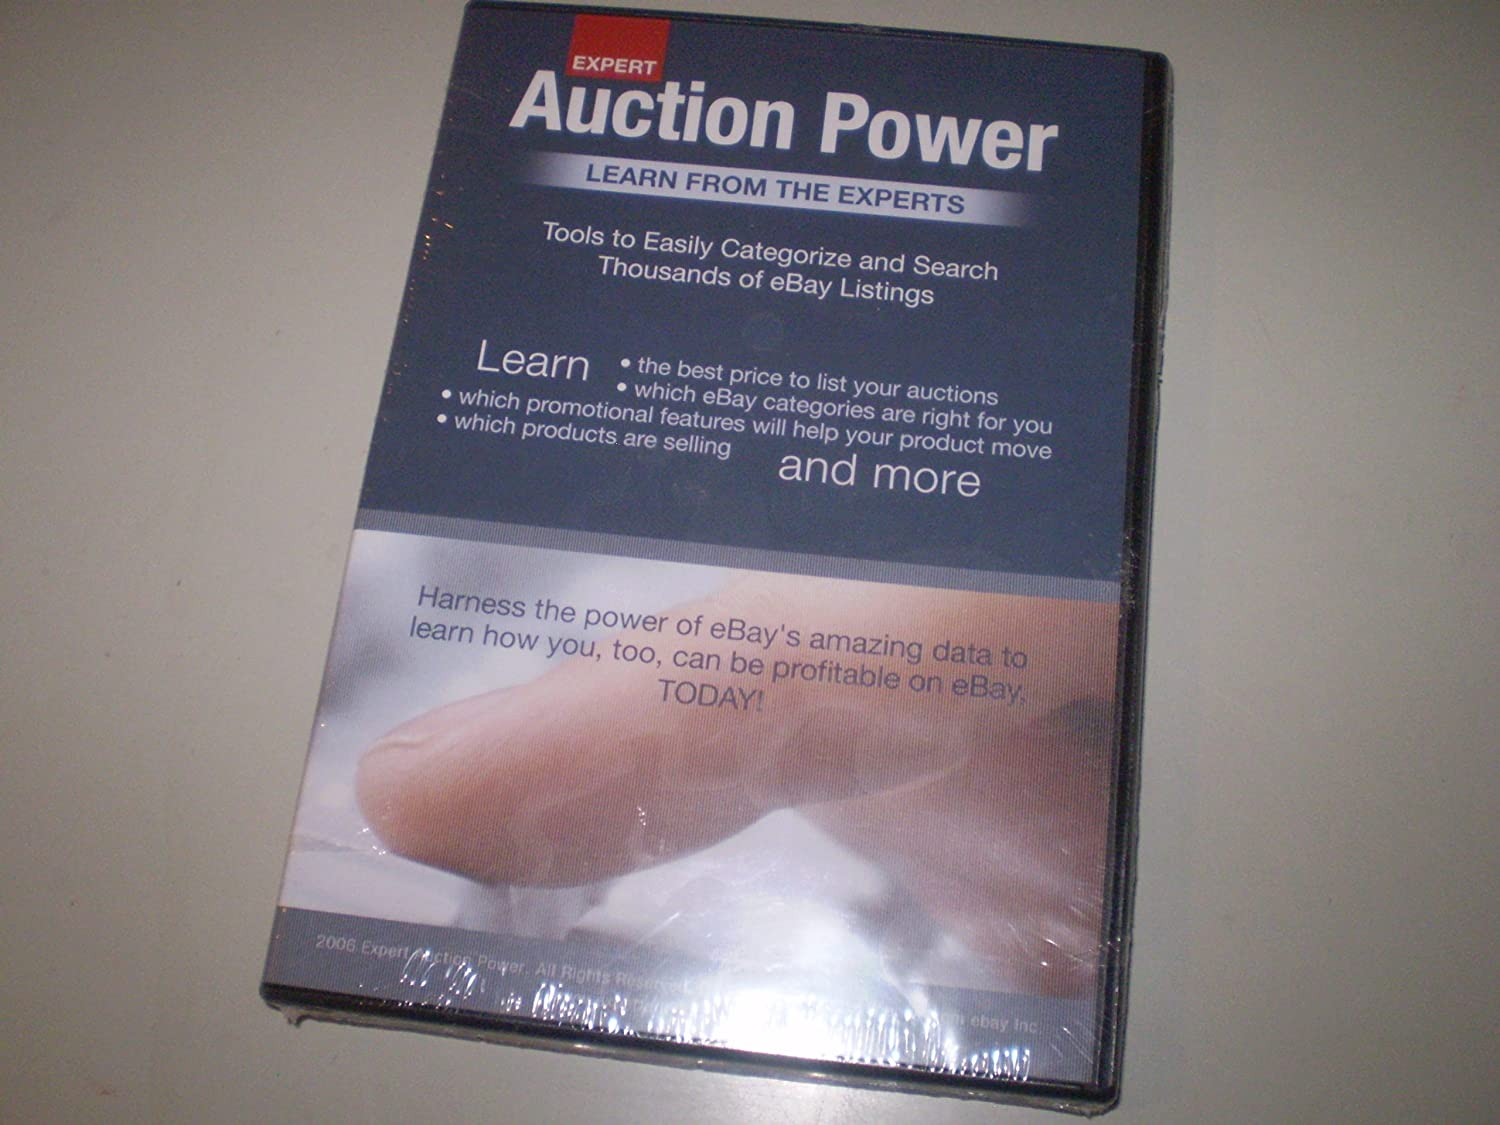 Expert Auction Power - Learn from the Experts by e-bay by e-bay: Amazon.es: Juguetes y juegos